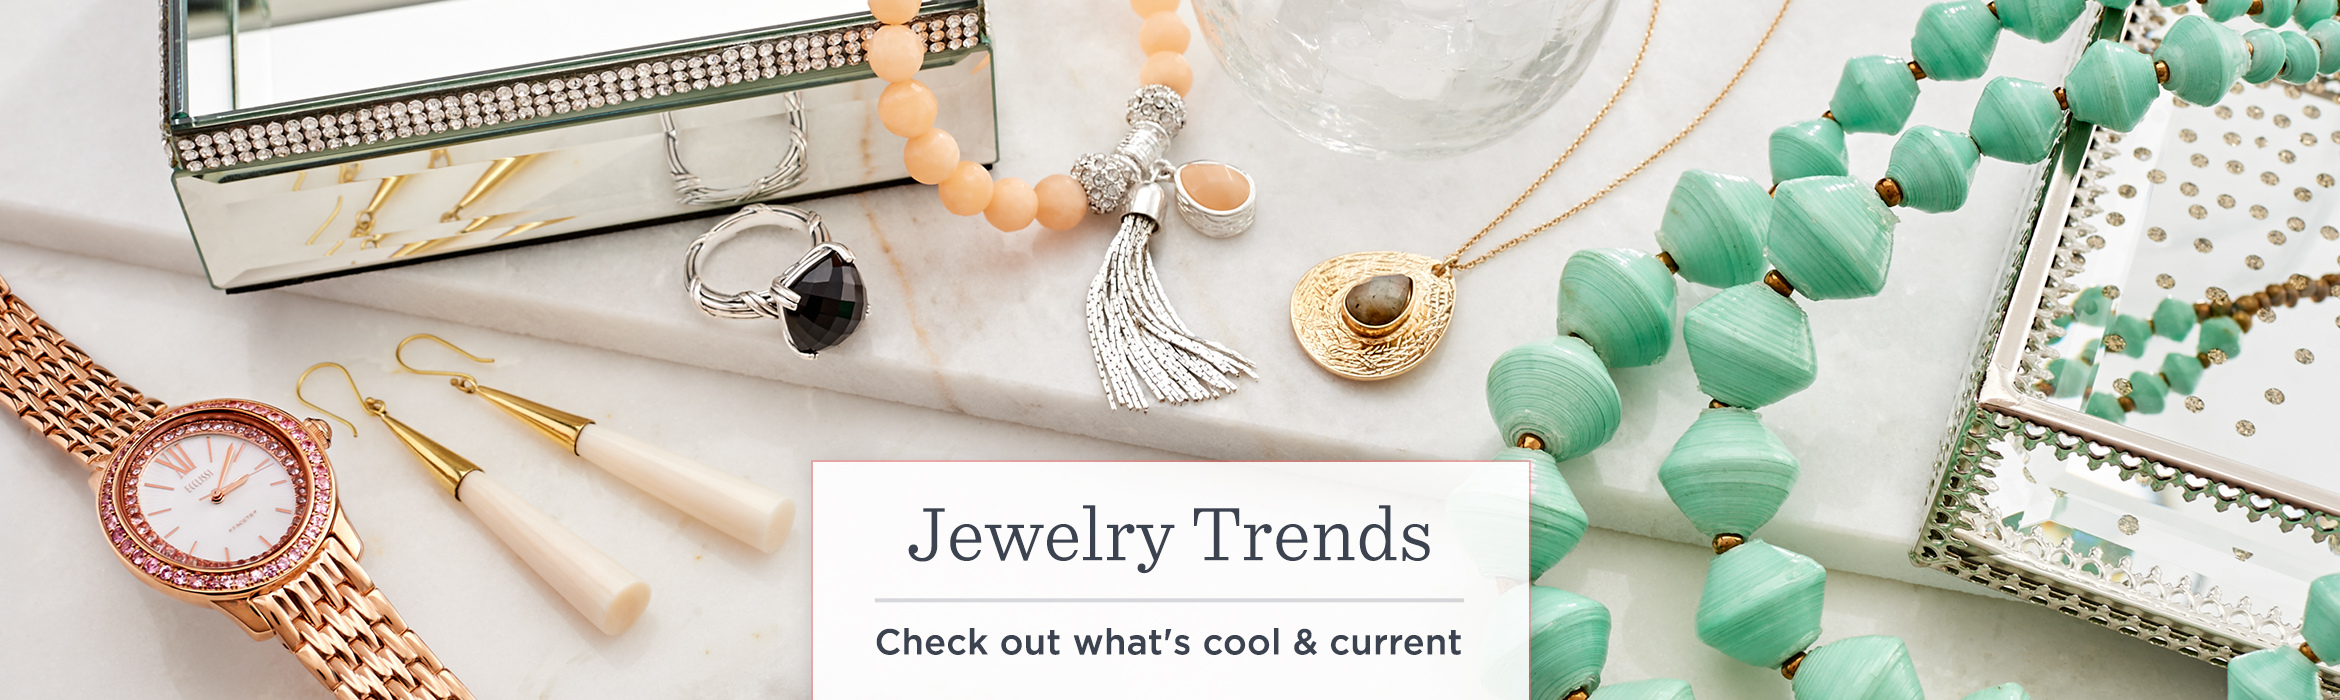 Jewelry Trends. Check out what's cool & current